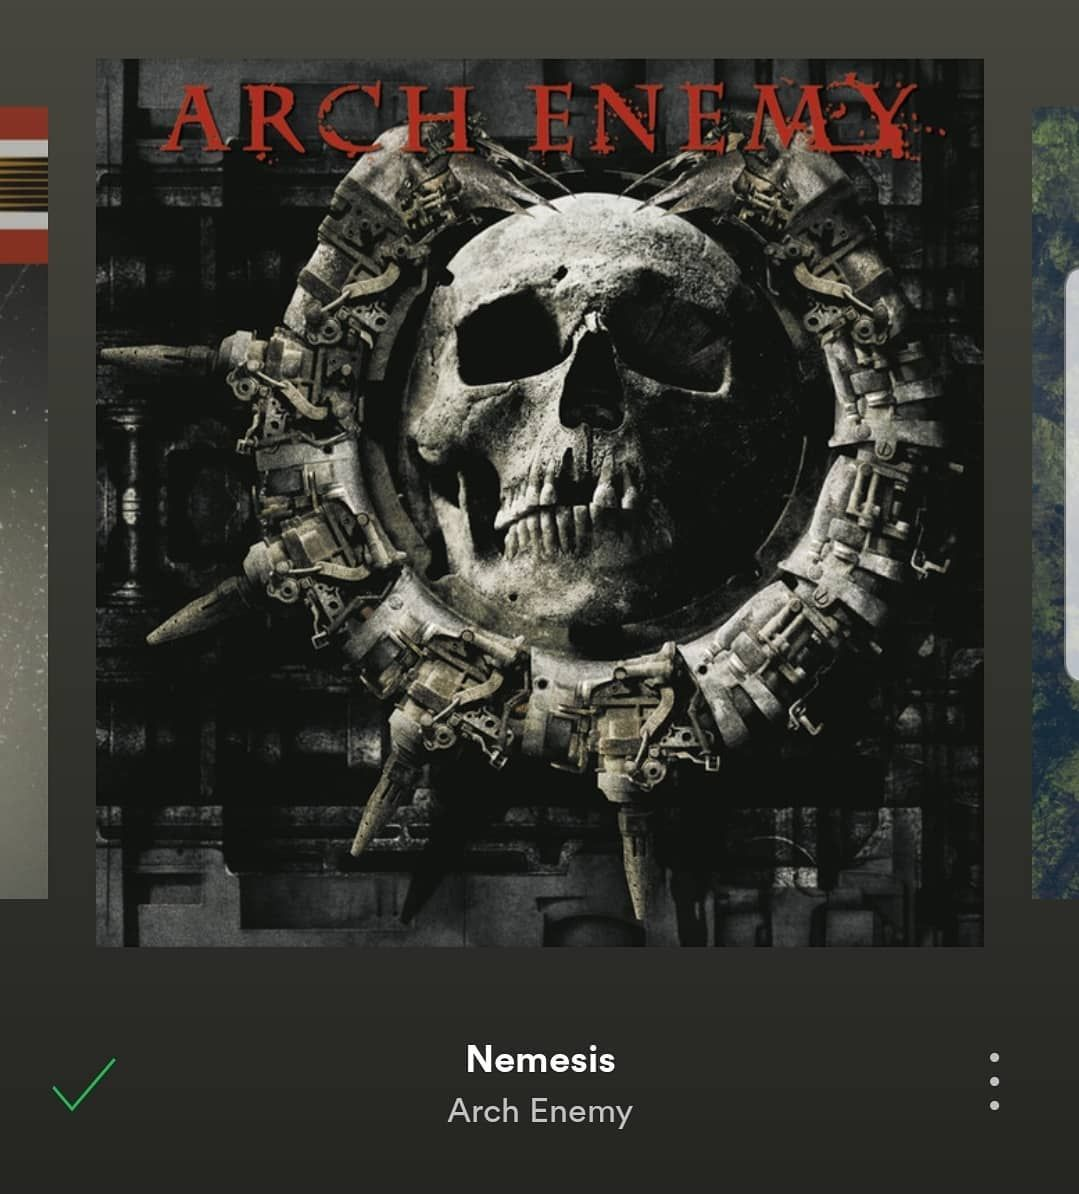 Only Way I Ll Be Getting Through Today Archenemy Metalmusic Melodicmetal Metalastherapy Mytherapy Overit Imdon Instagram Posts Arch Enemy Instagram